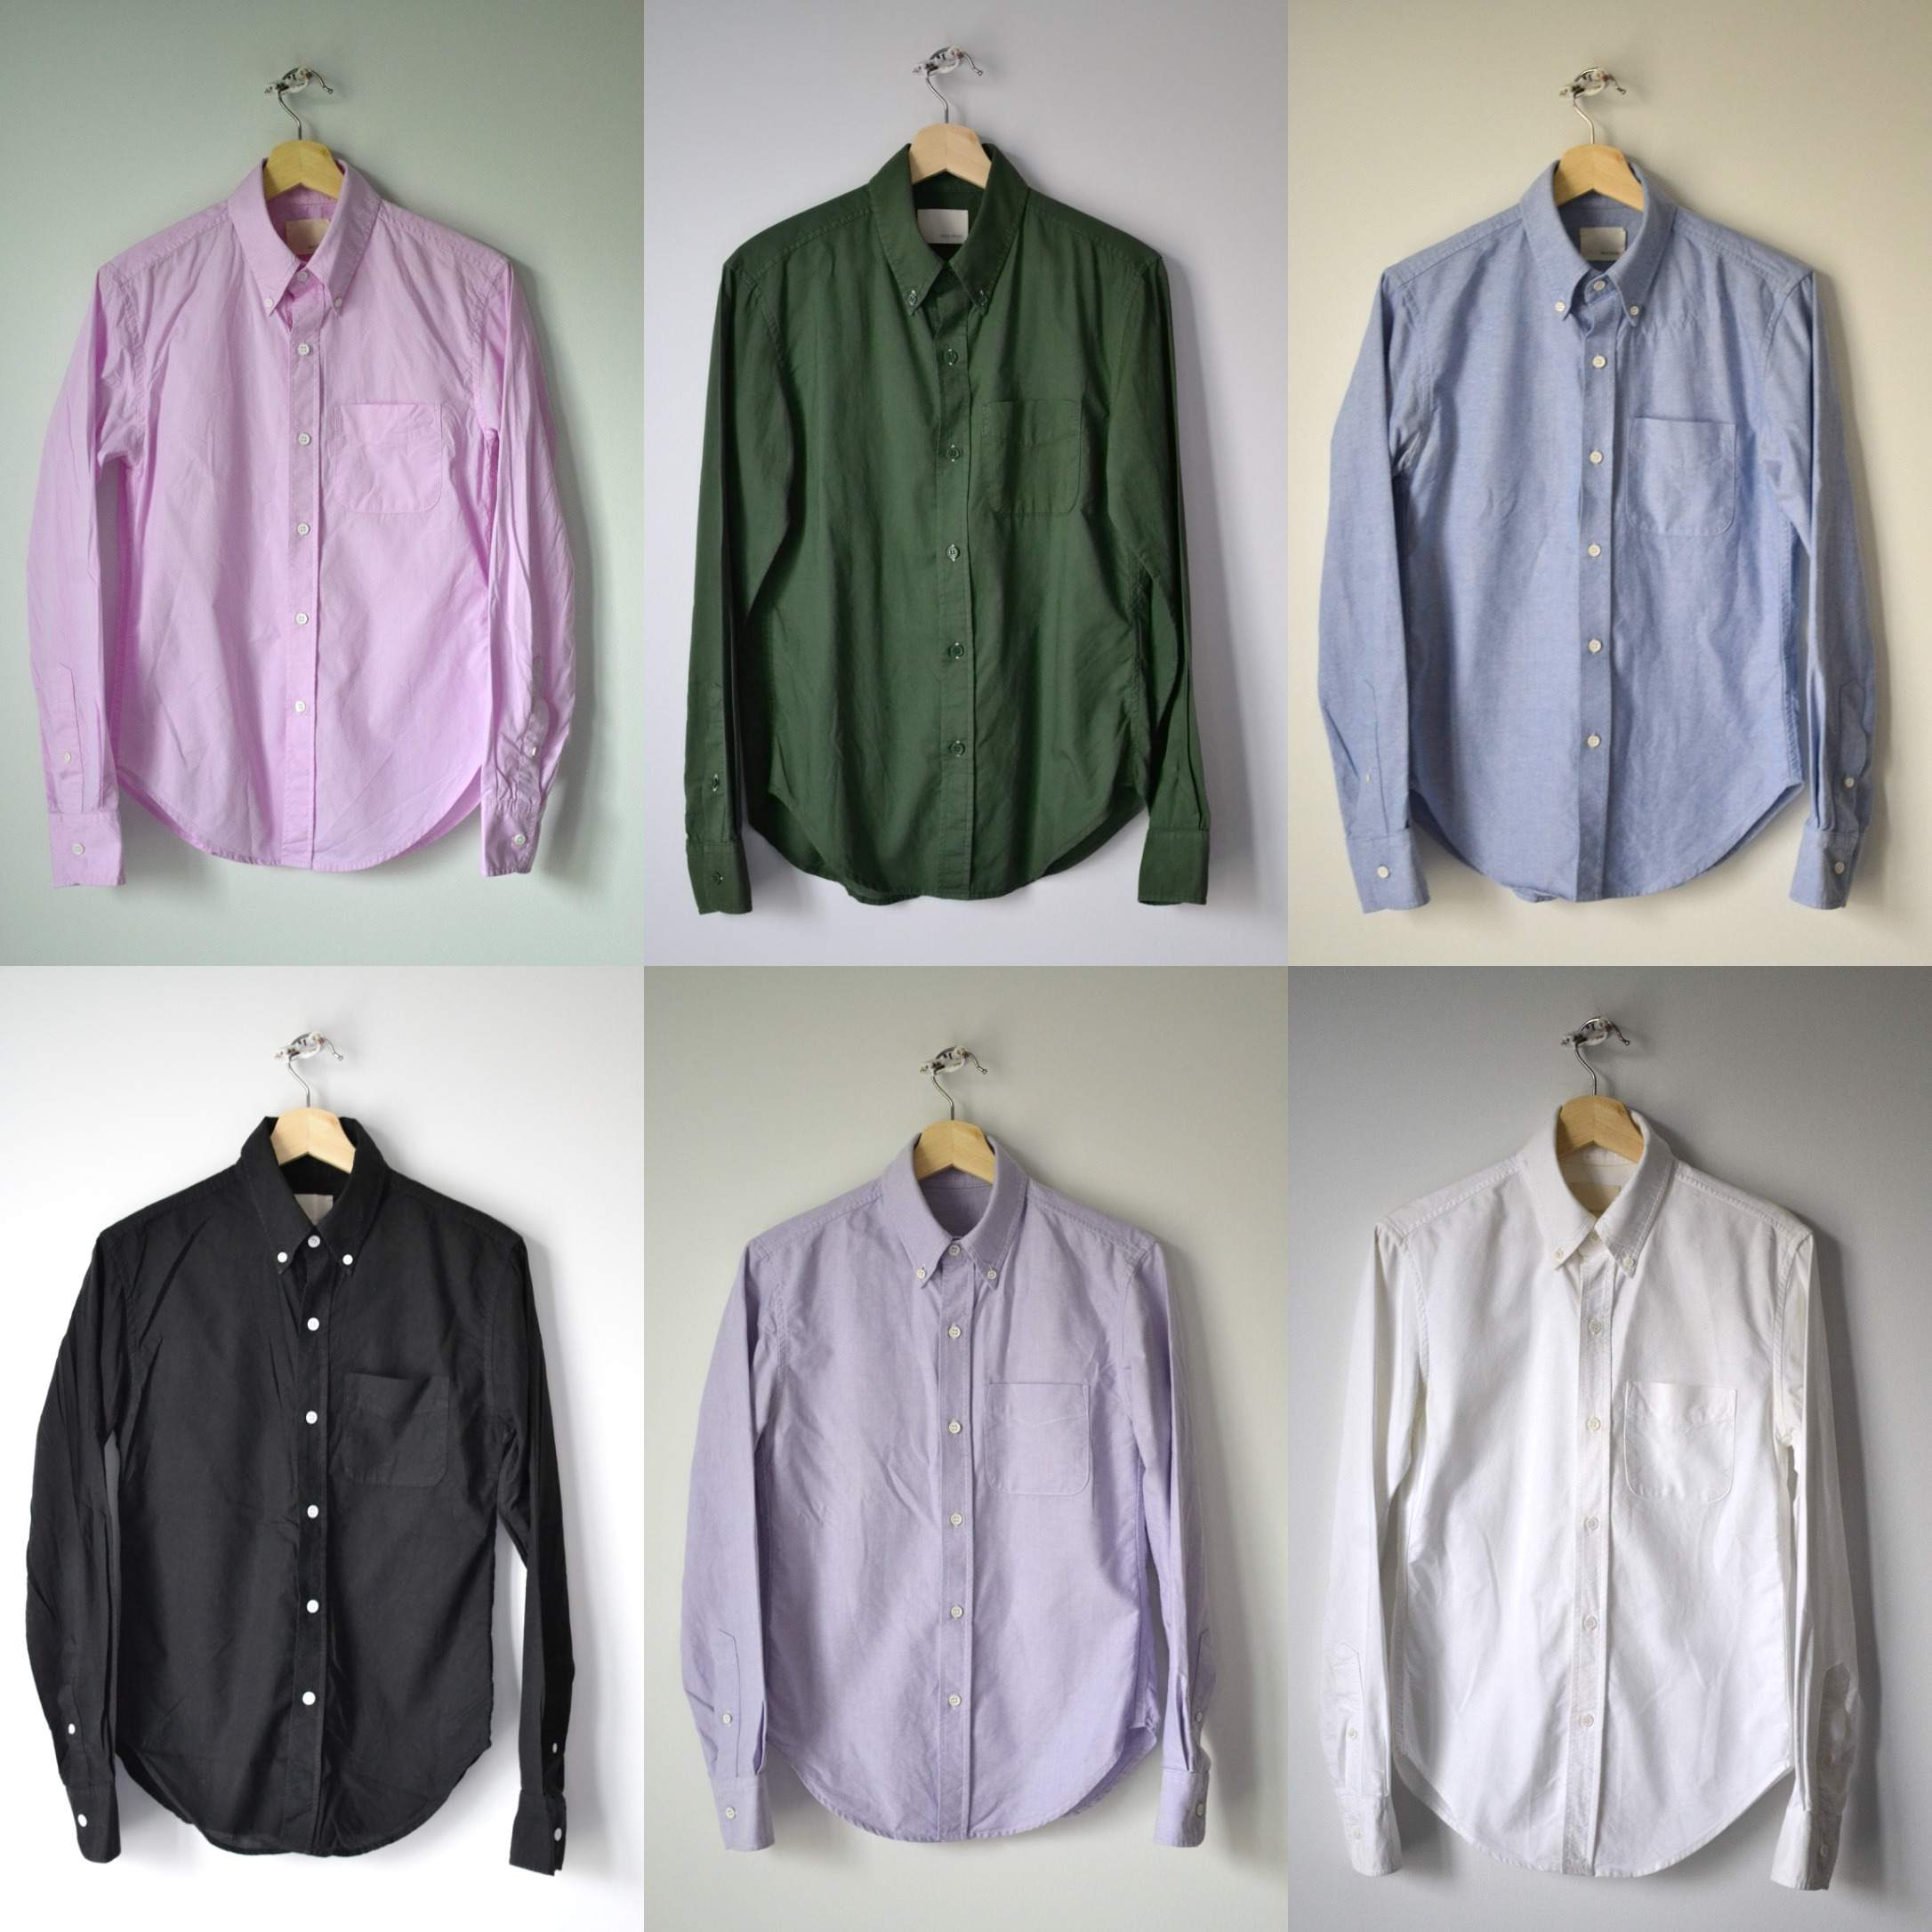 Band of Outsiders -  Assorted Overdye and Oxford Pack - XS